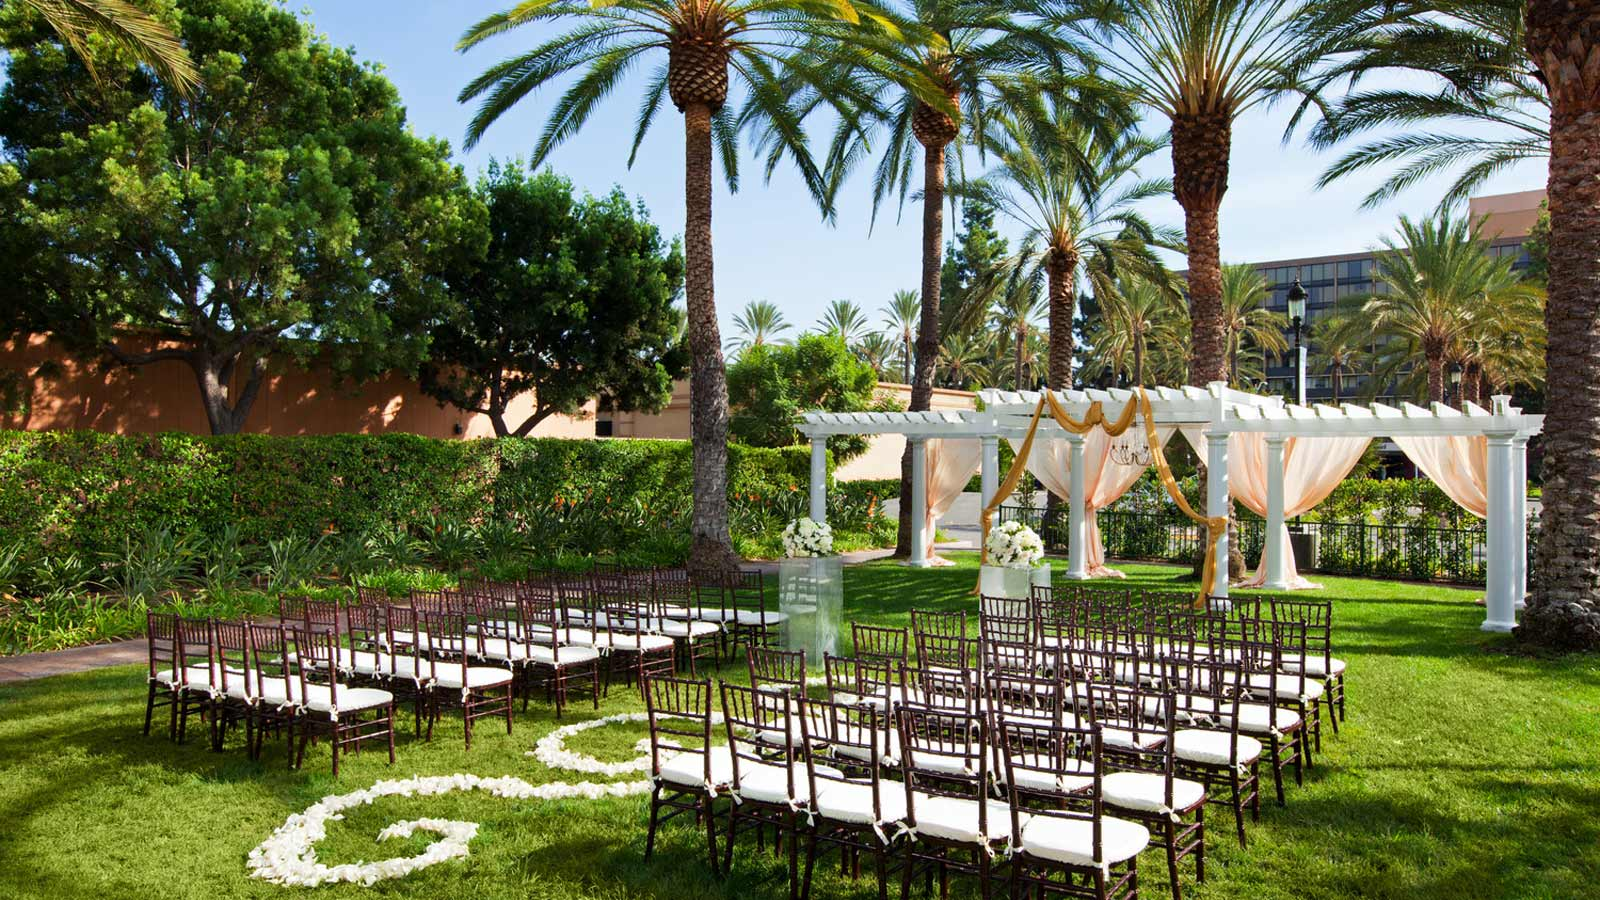 Outdoor Wedding Venue Photo Gallery: Sheraton Park Hotel At The